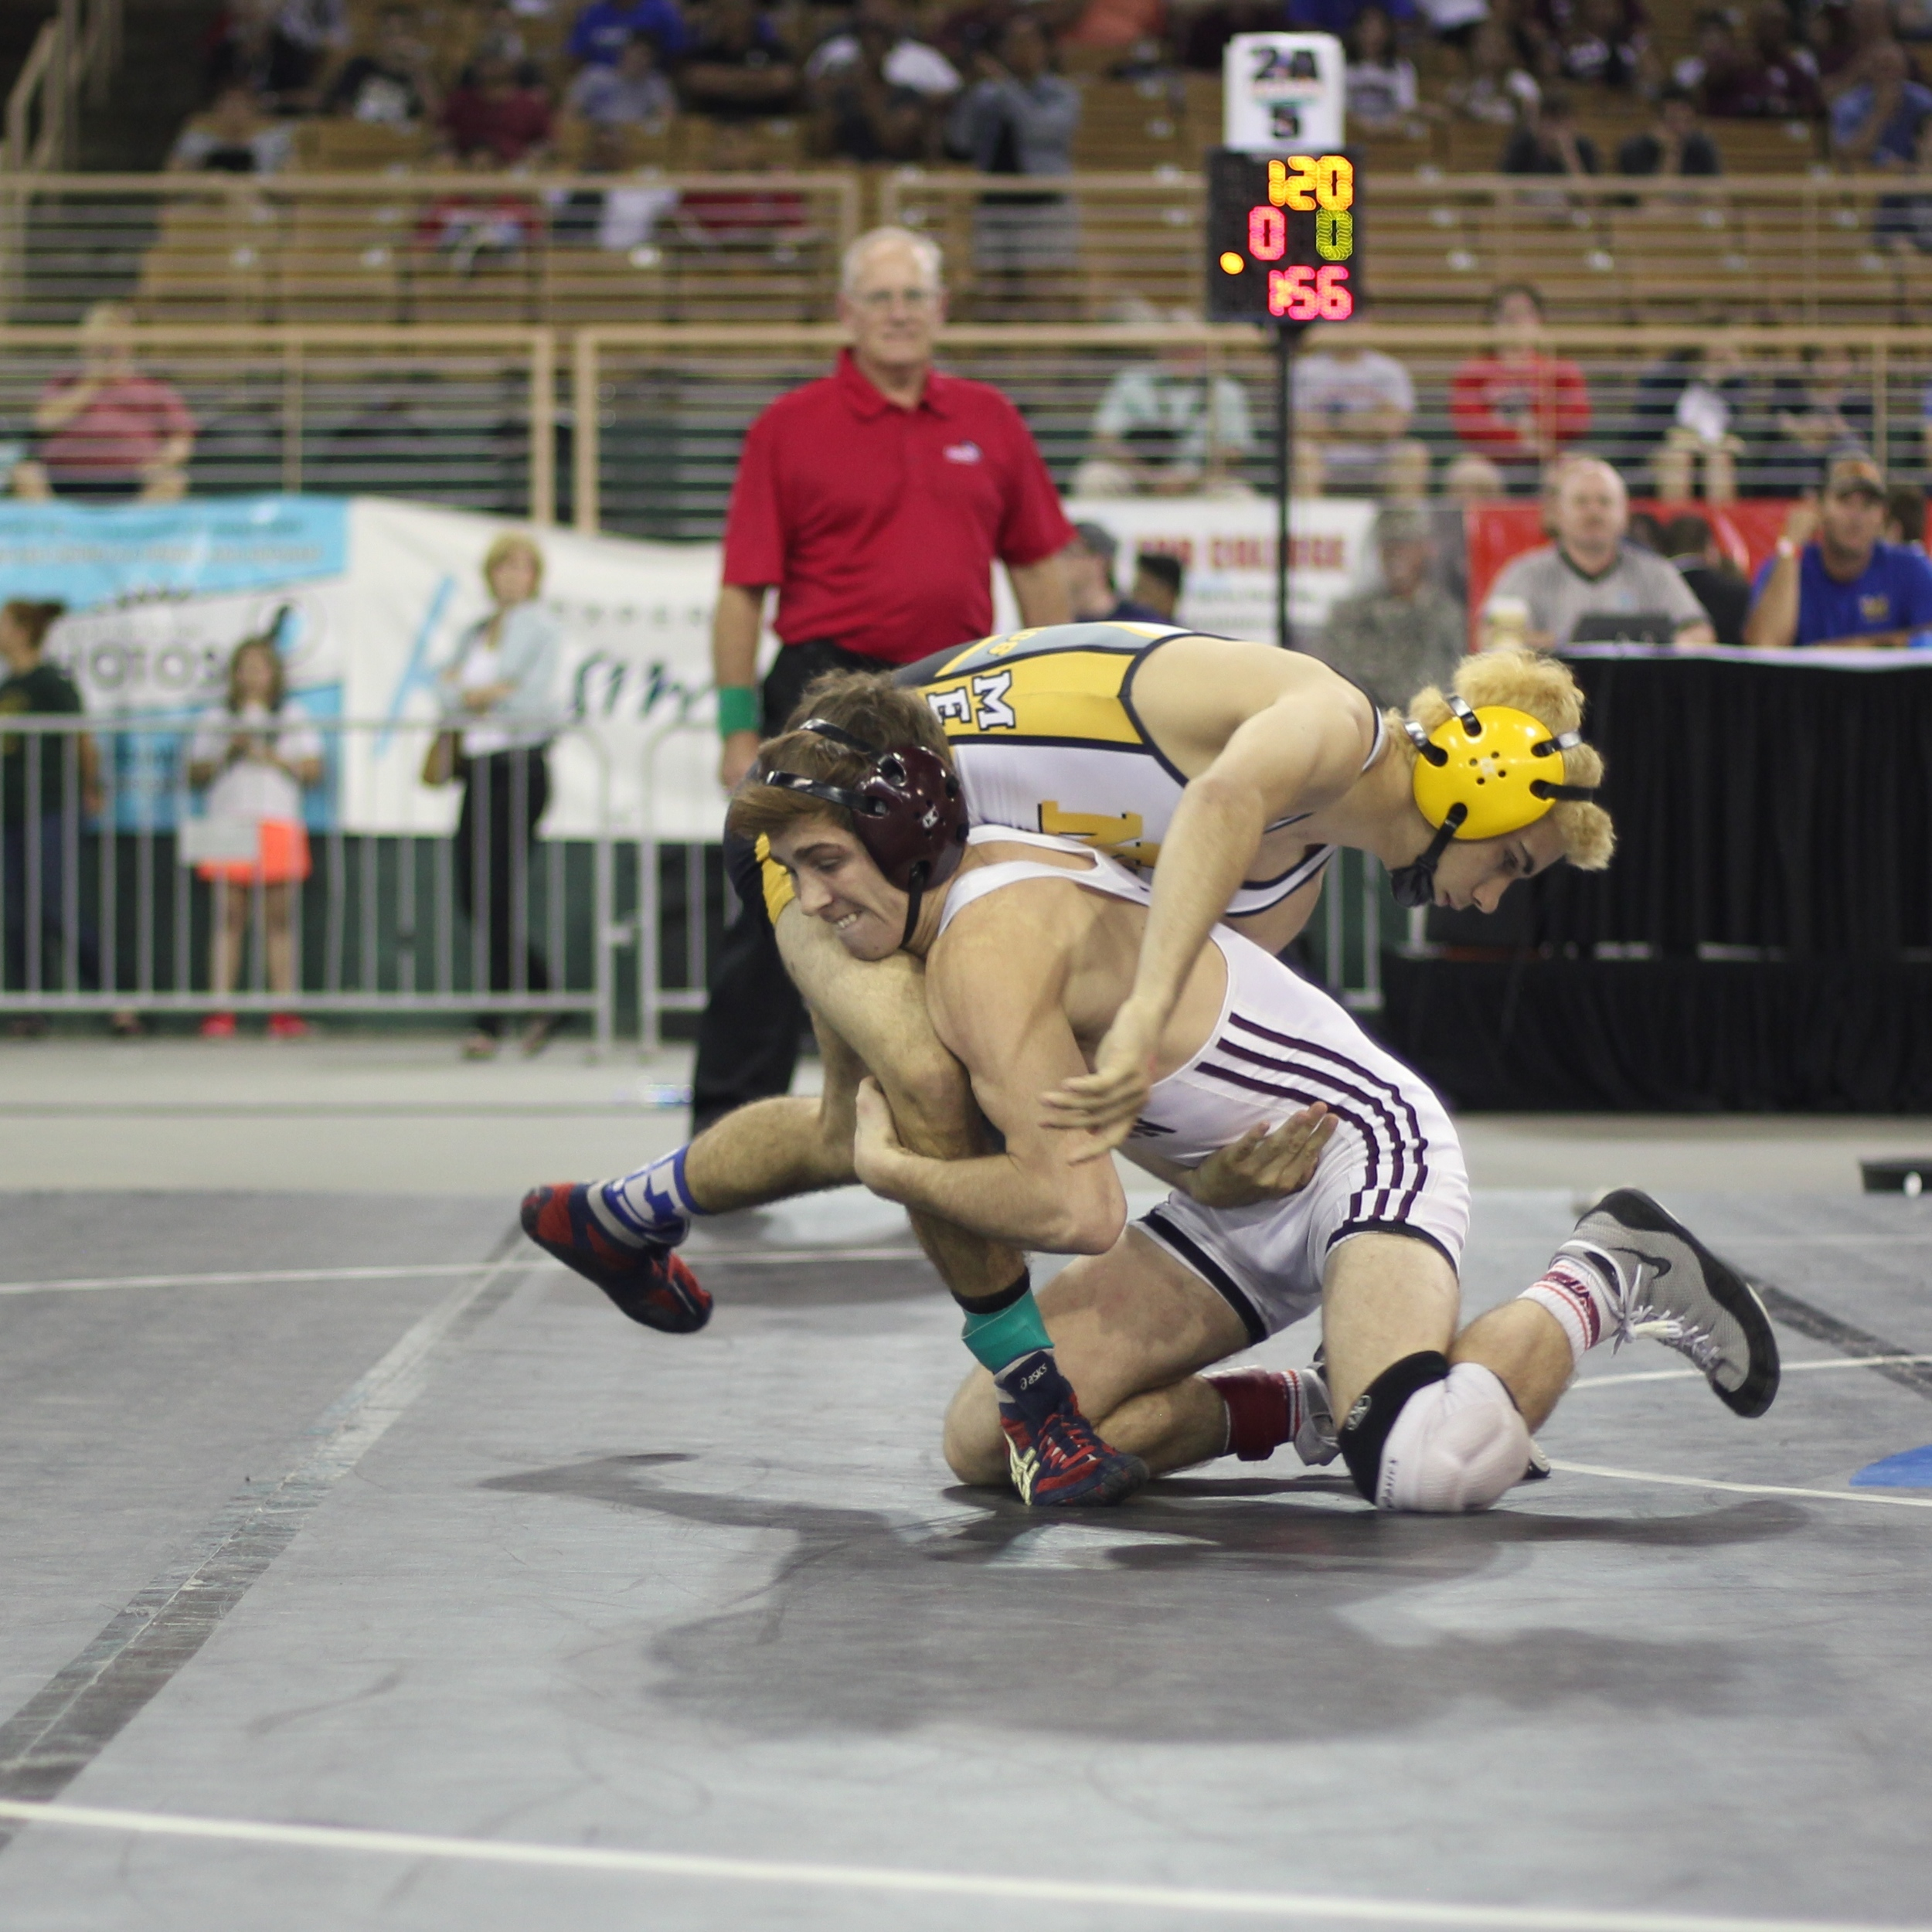 Norstrem pinned Hudson to win the 2015 2A 120 lb.title